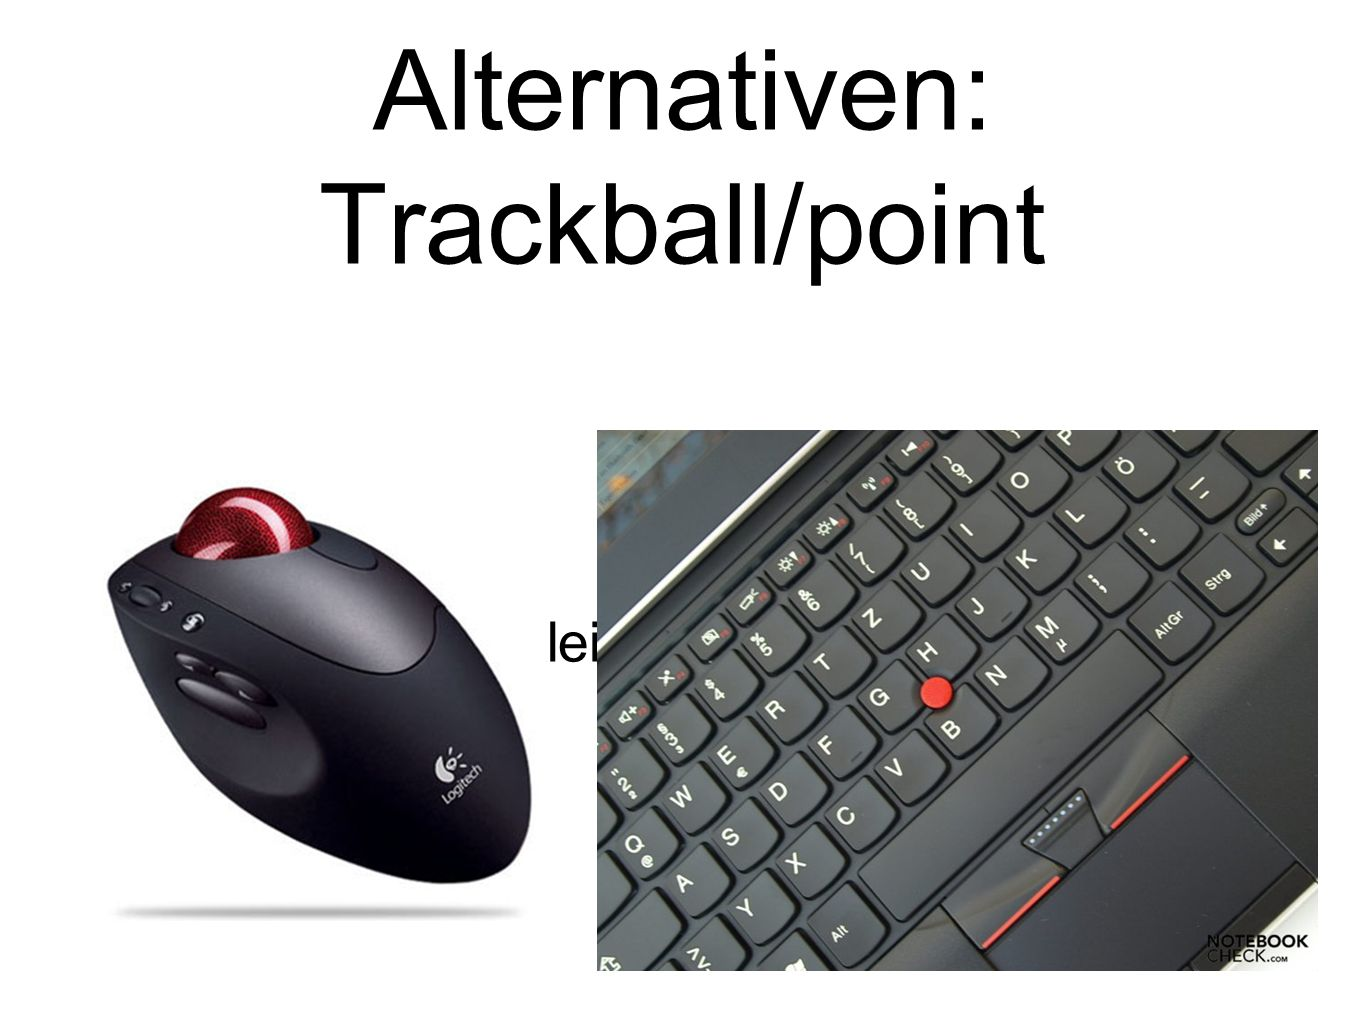 Alternativen: Trackball/point